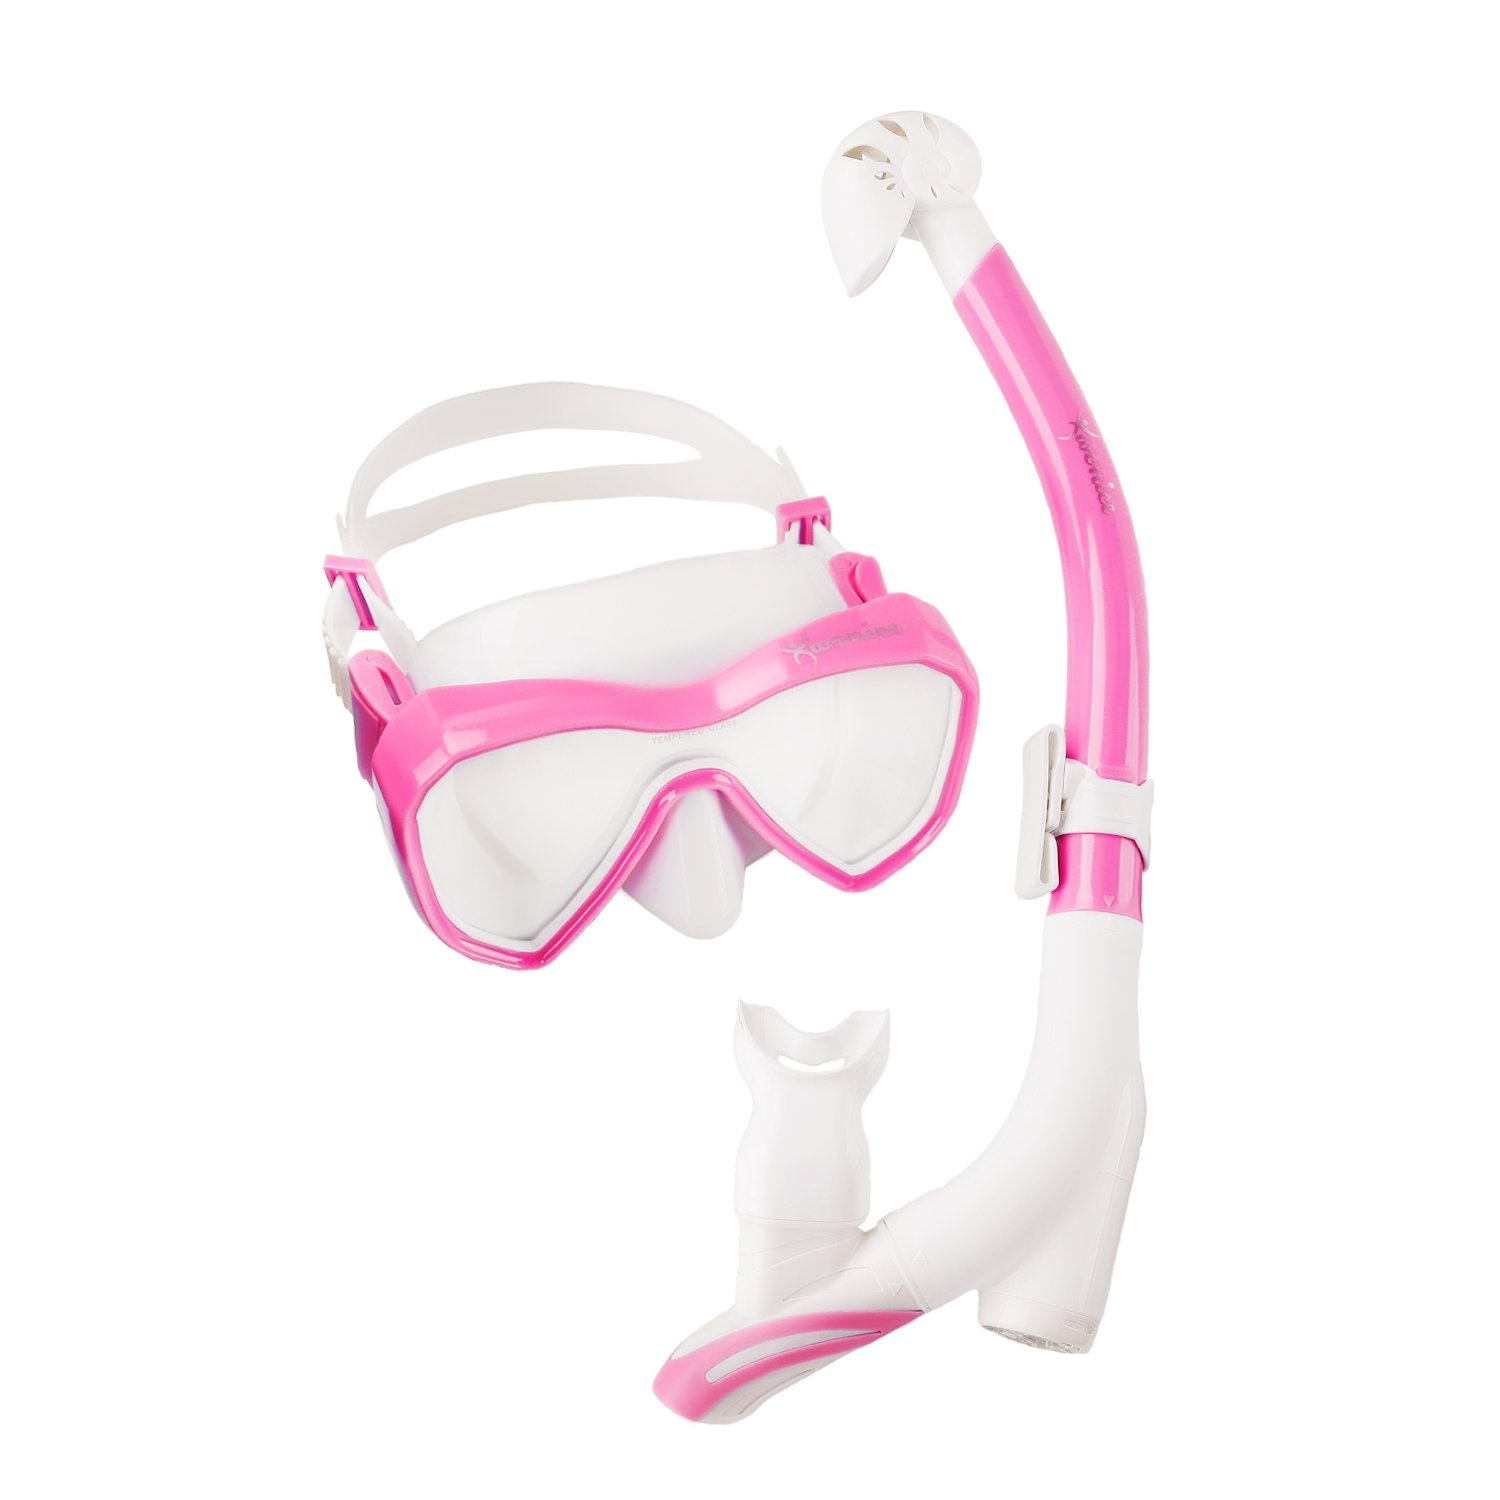 2b16239f0 WONICE Innovative Water-Air Separated Channel Dry Top Snorkel Set.Get Rid  of Sucking